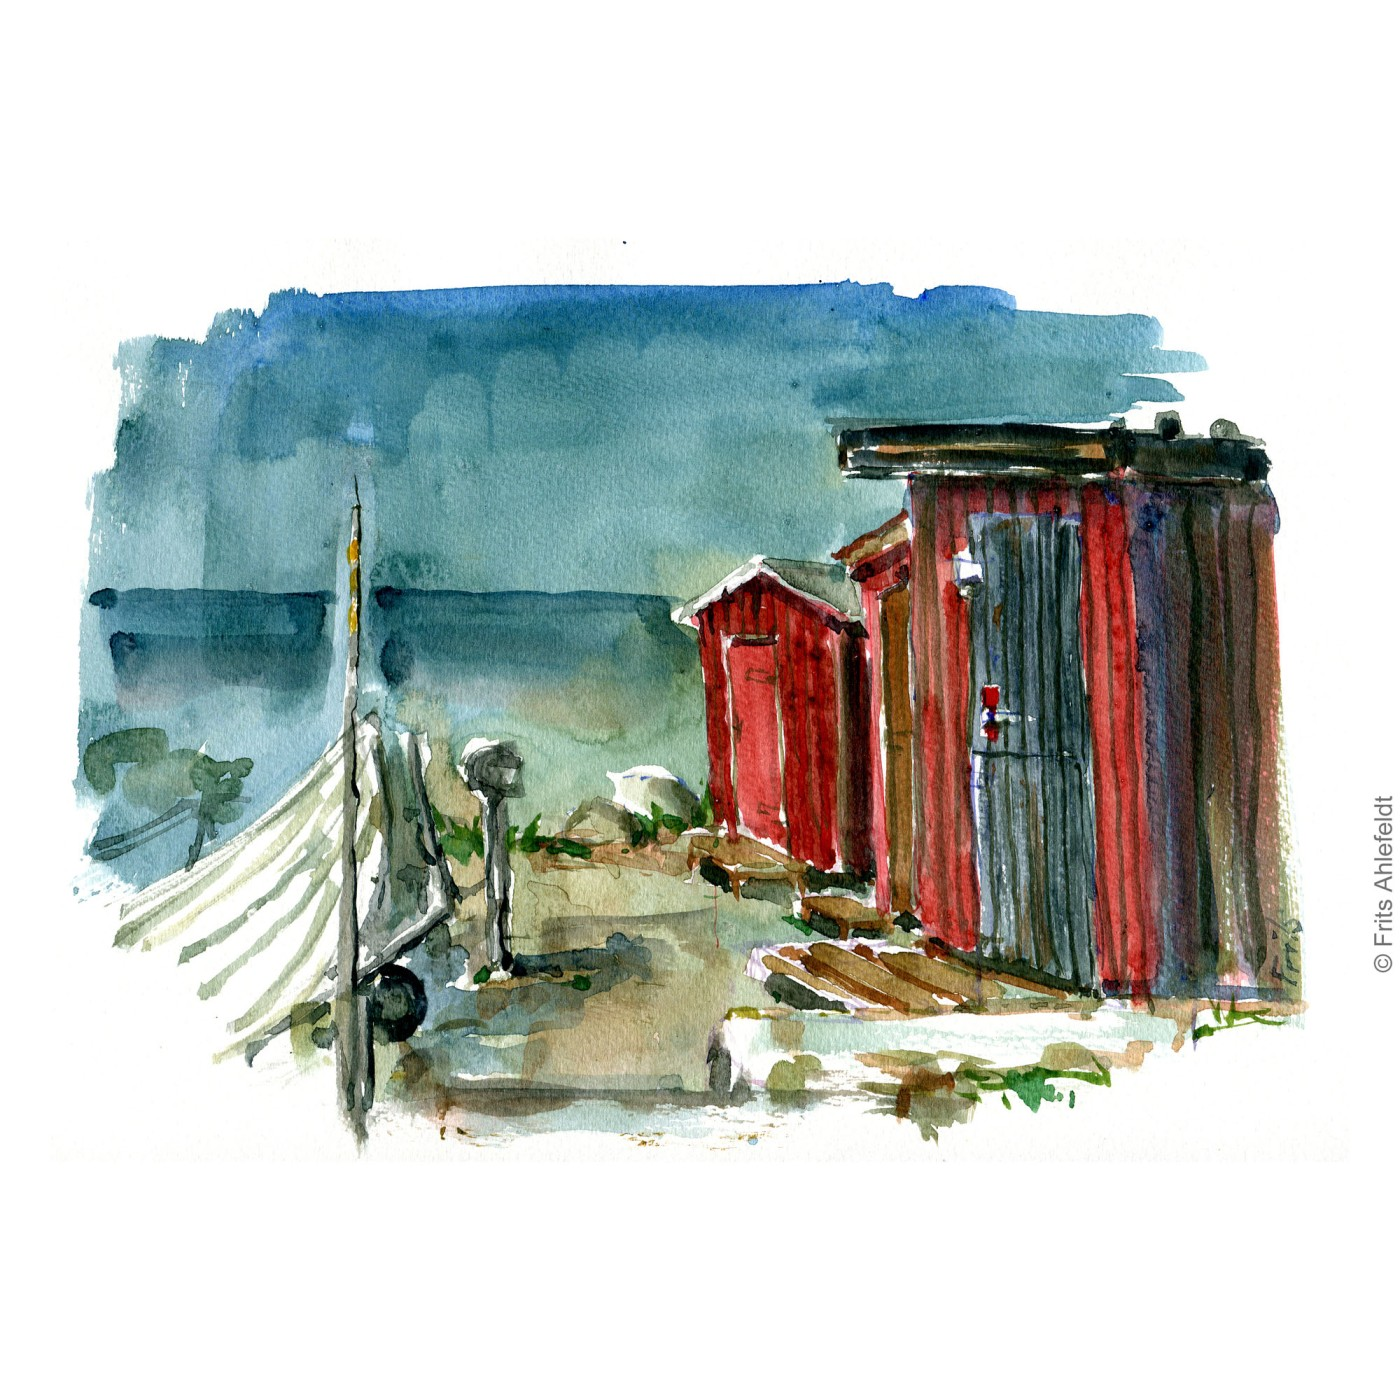 Sose Odde. South Bornholm fishing houses. Bornholm watercolor painting by Frits Ahlefeldt